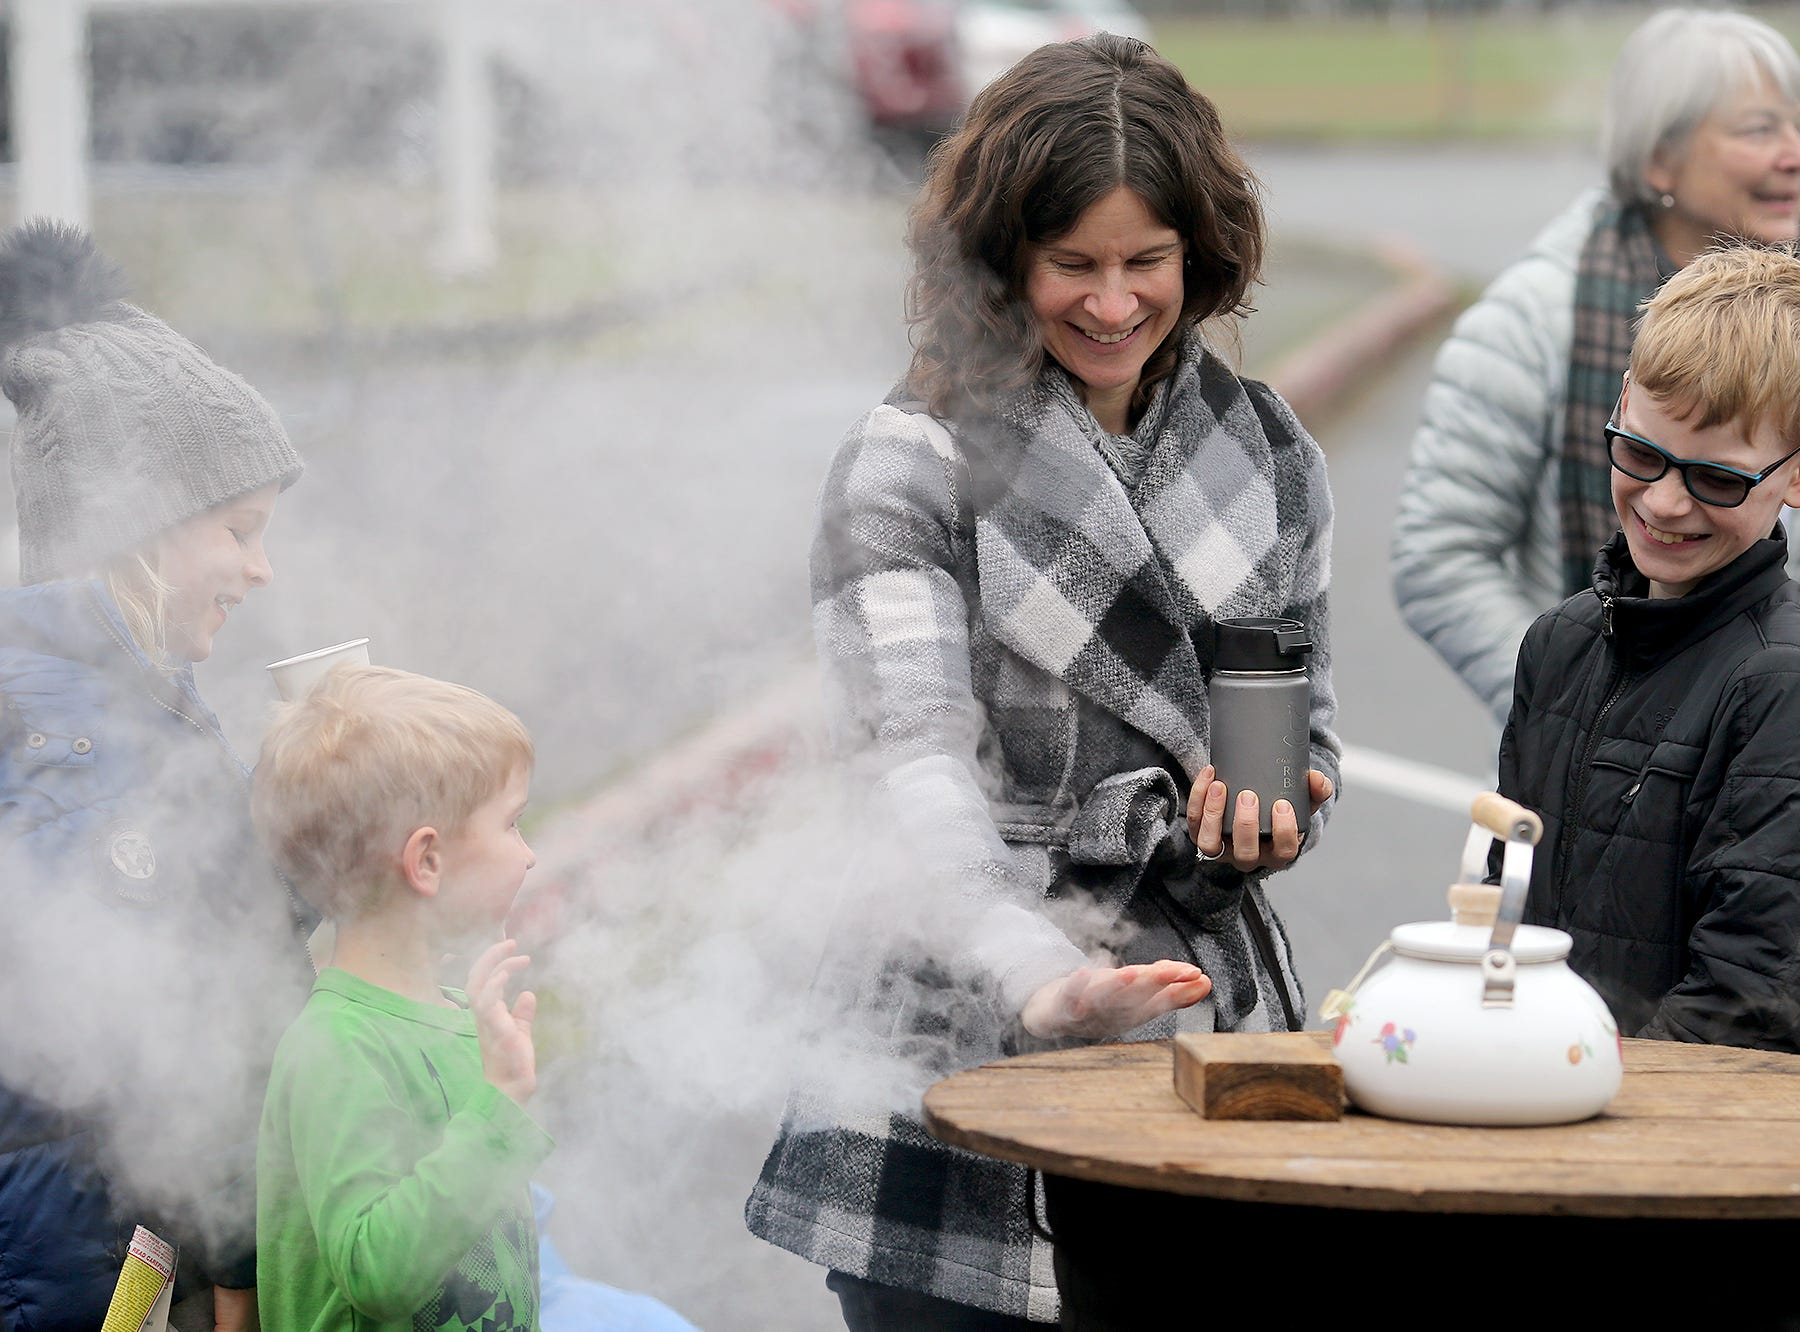 The 30th anniversary of Bainbridge Island's Japanese-American Mochi Tsuki celebration was held at an new location at the Woodward Middle School on Saturday, January, 5, 2019. Mochi Tsuki is a traditional Japanese New Year's tradition of steaming rice and pounding into a rice. Nicole Bavo, center, of Bainbridge Island warms her hand on the wood-fired water heater for the rice cooker with her sons Ethan Meidell, 8, left, Luke, 5, and Adrian, 10.